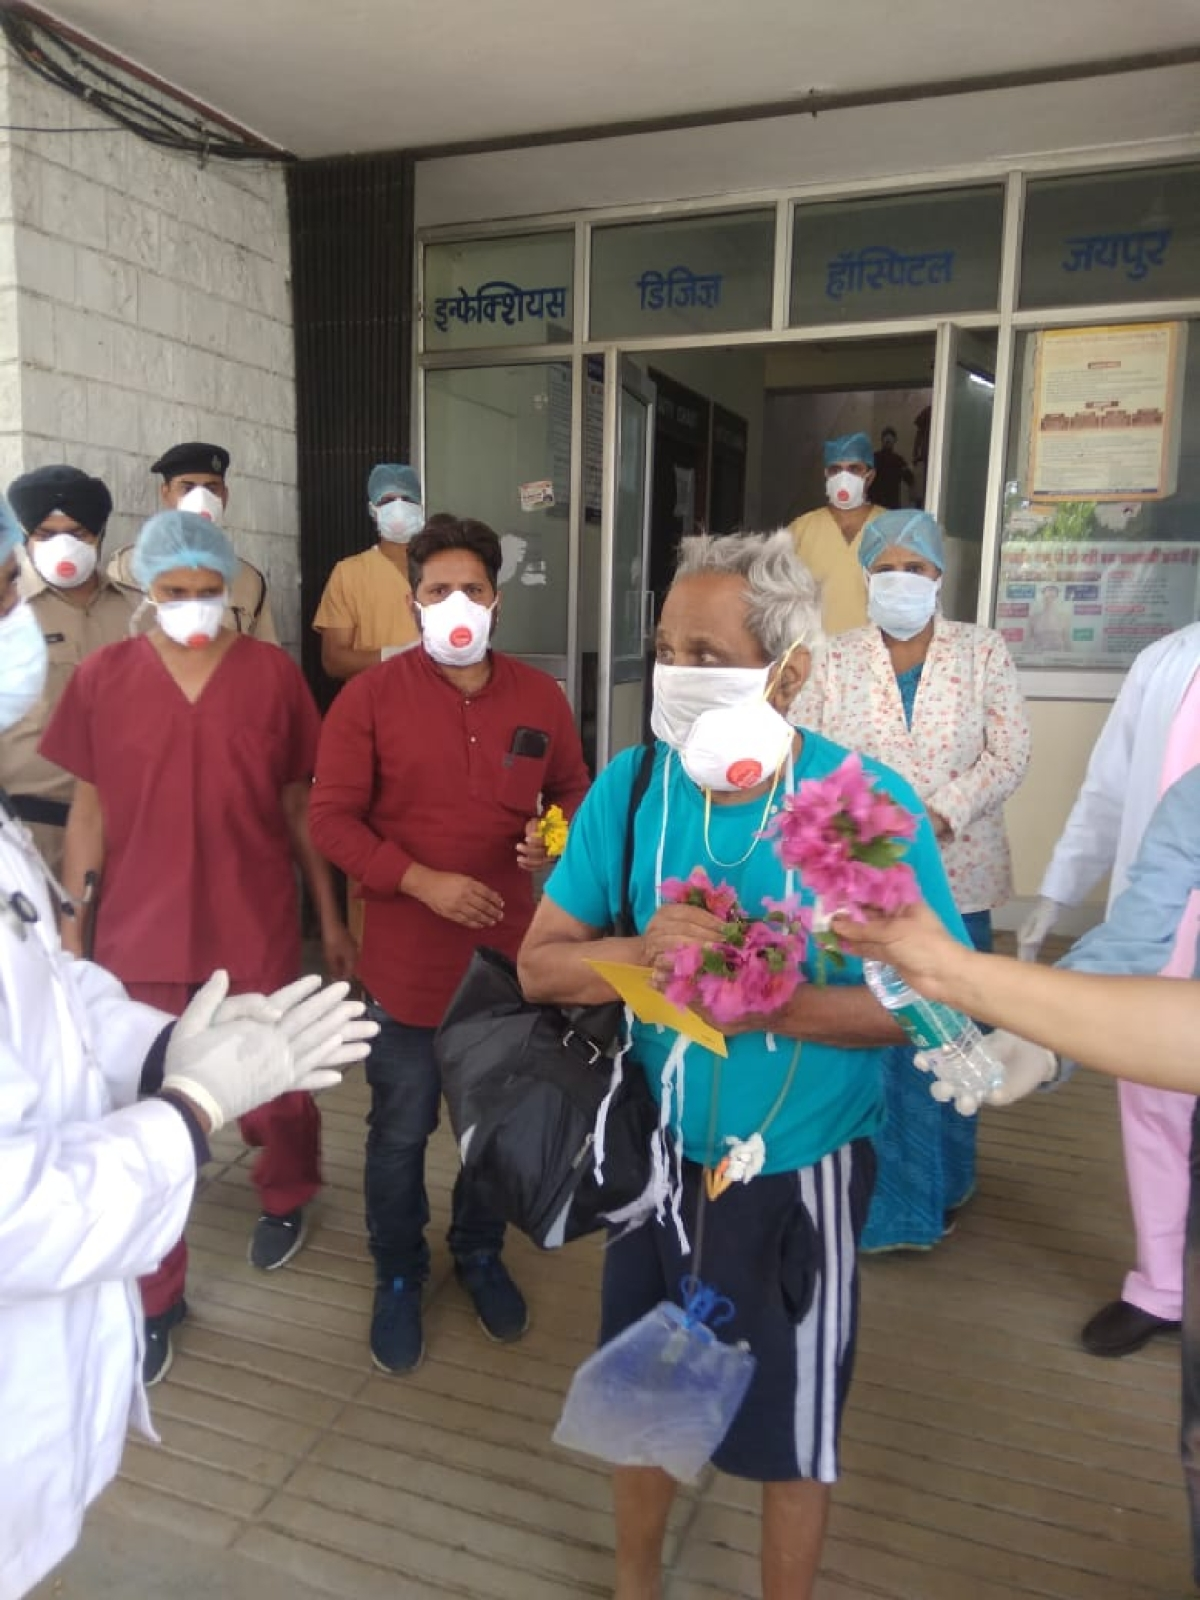 90-year-old man from Jaipur discharged after he beats coronavirus; hospital staff greet him with round of applause, flowers